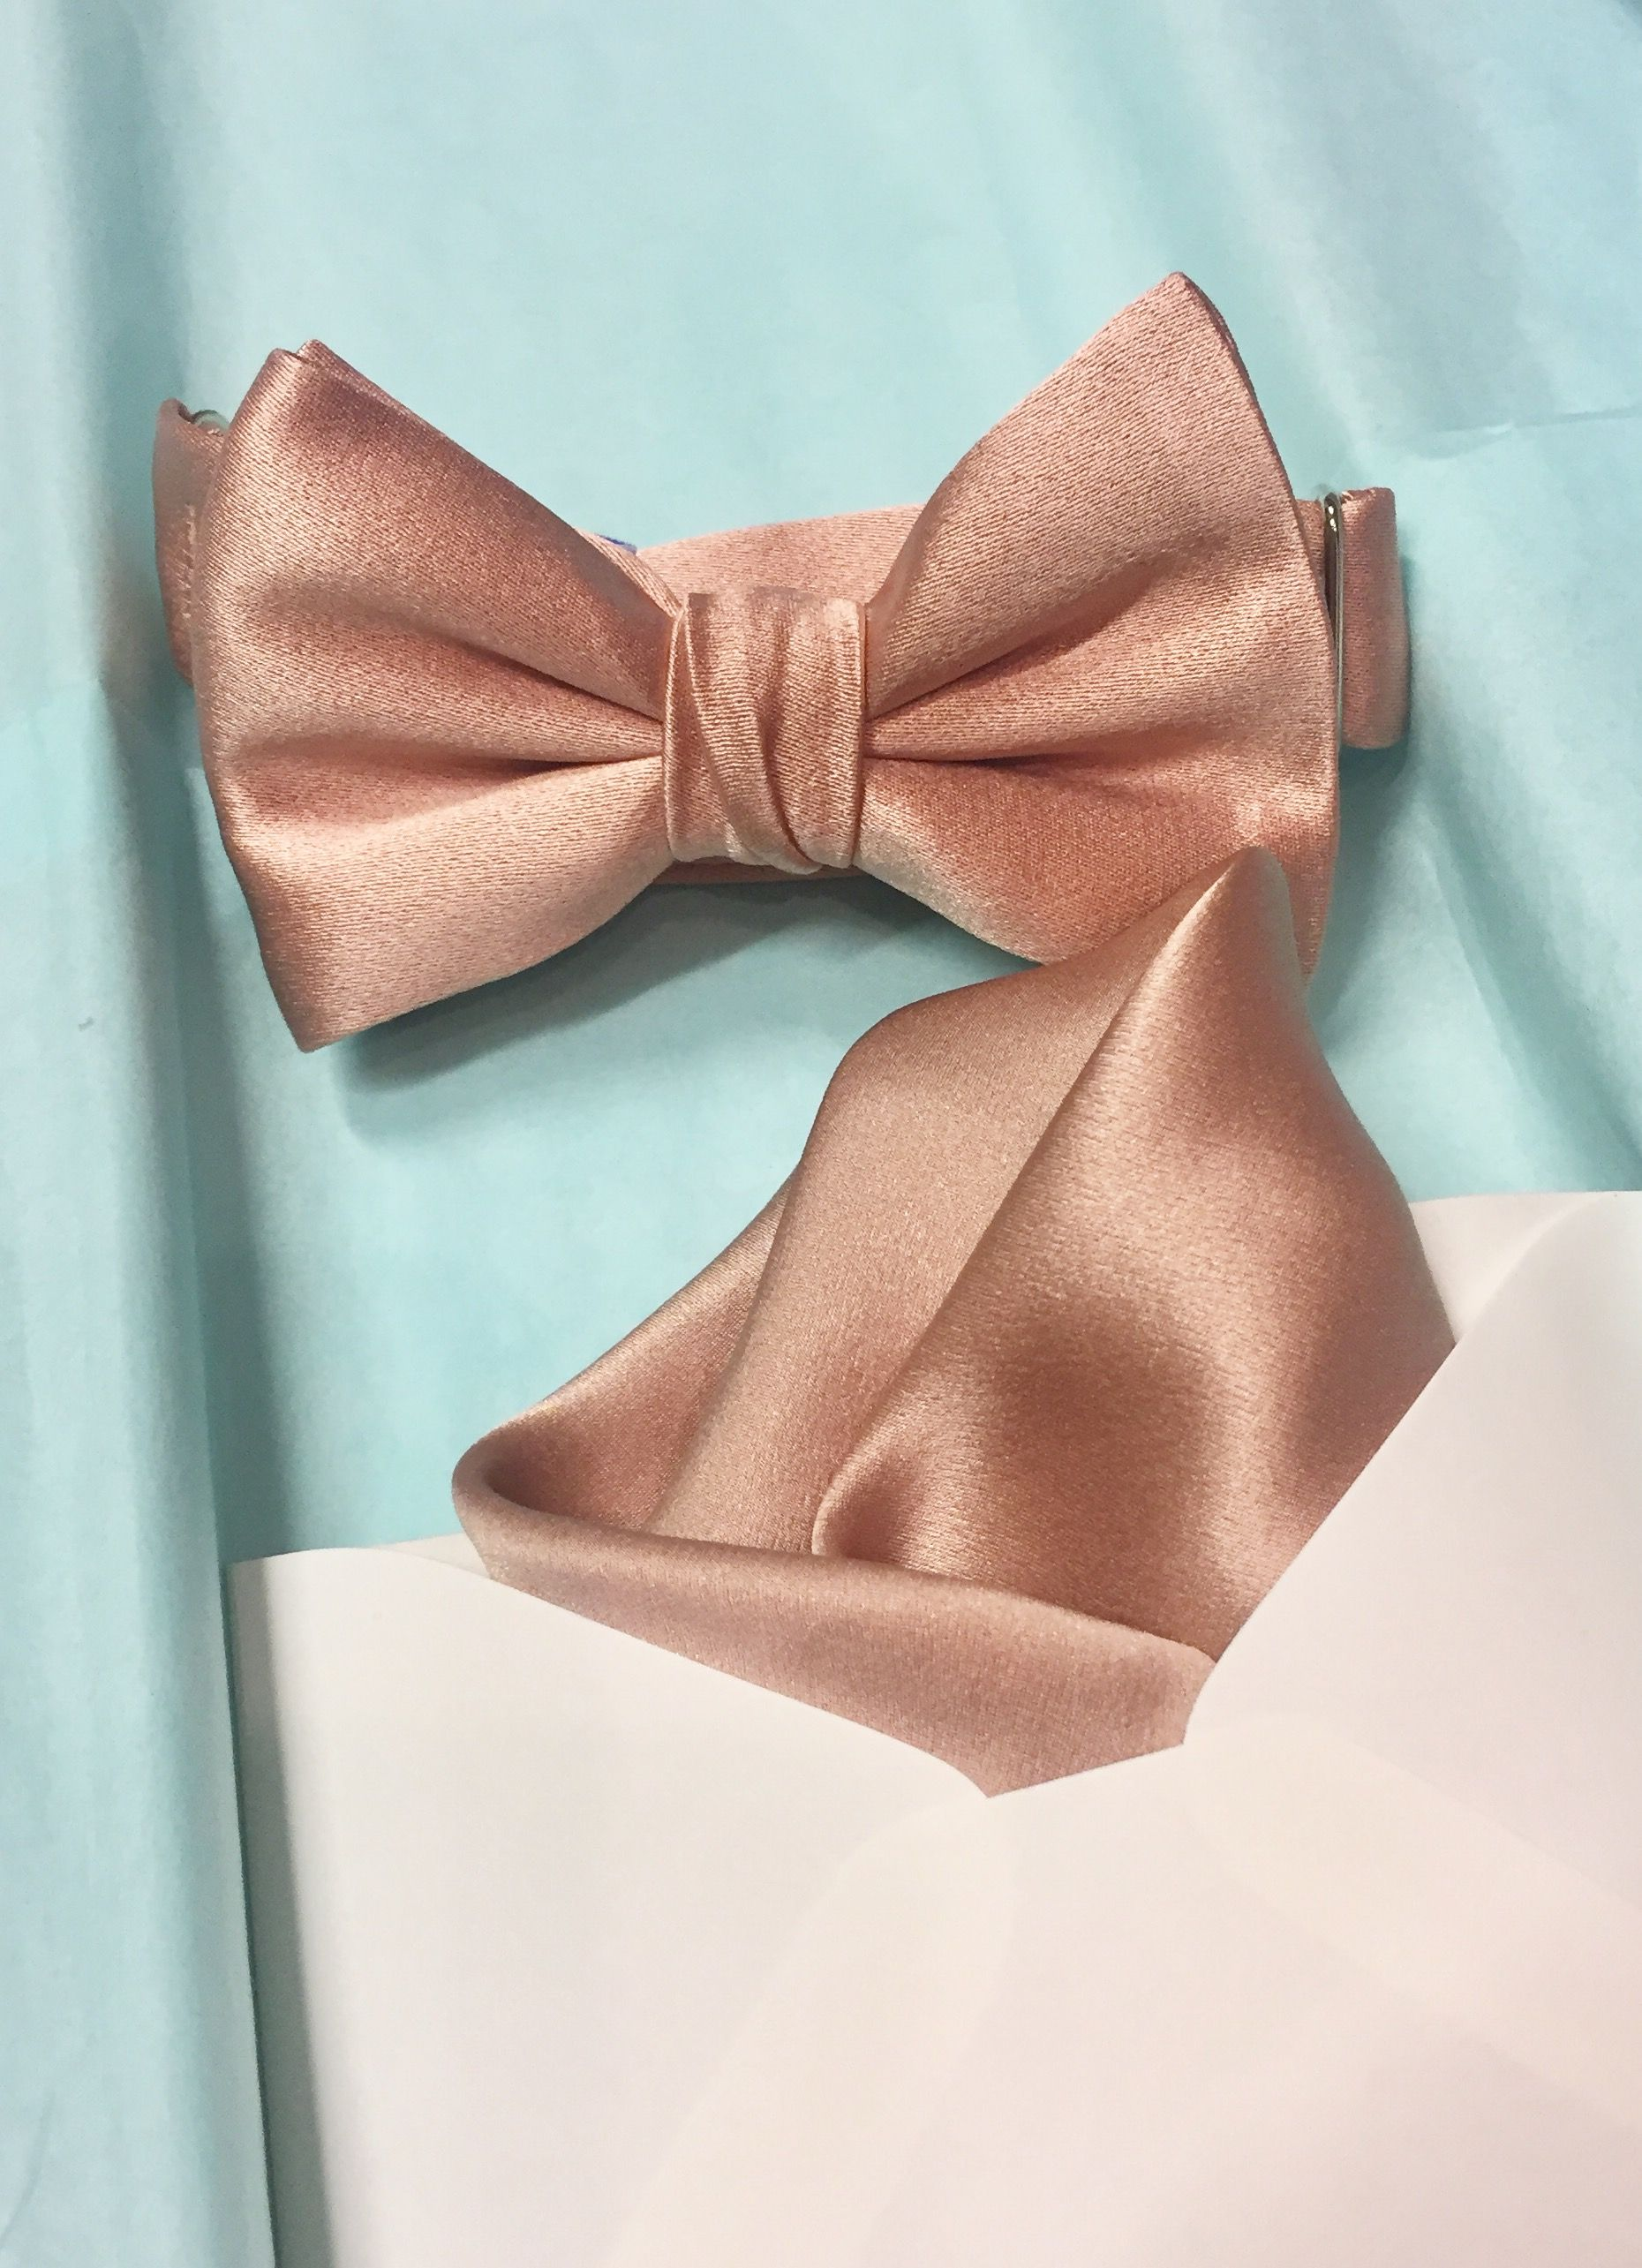 c15460d85eb1 Rose gold bow tie and pocket square for a wedding day. | Rose Gold ...